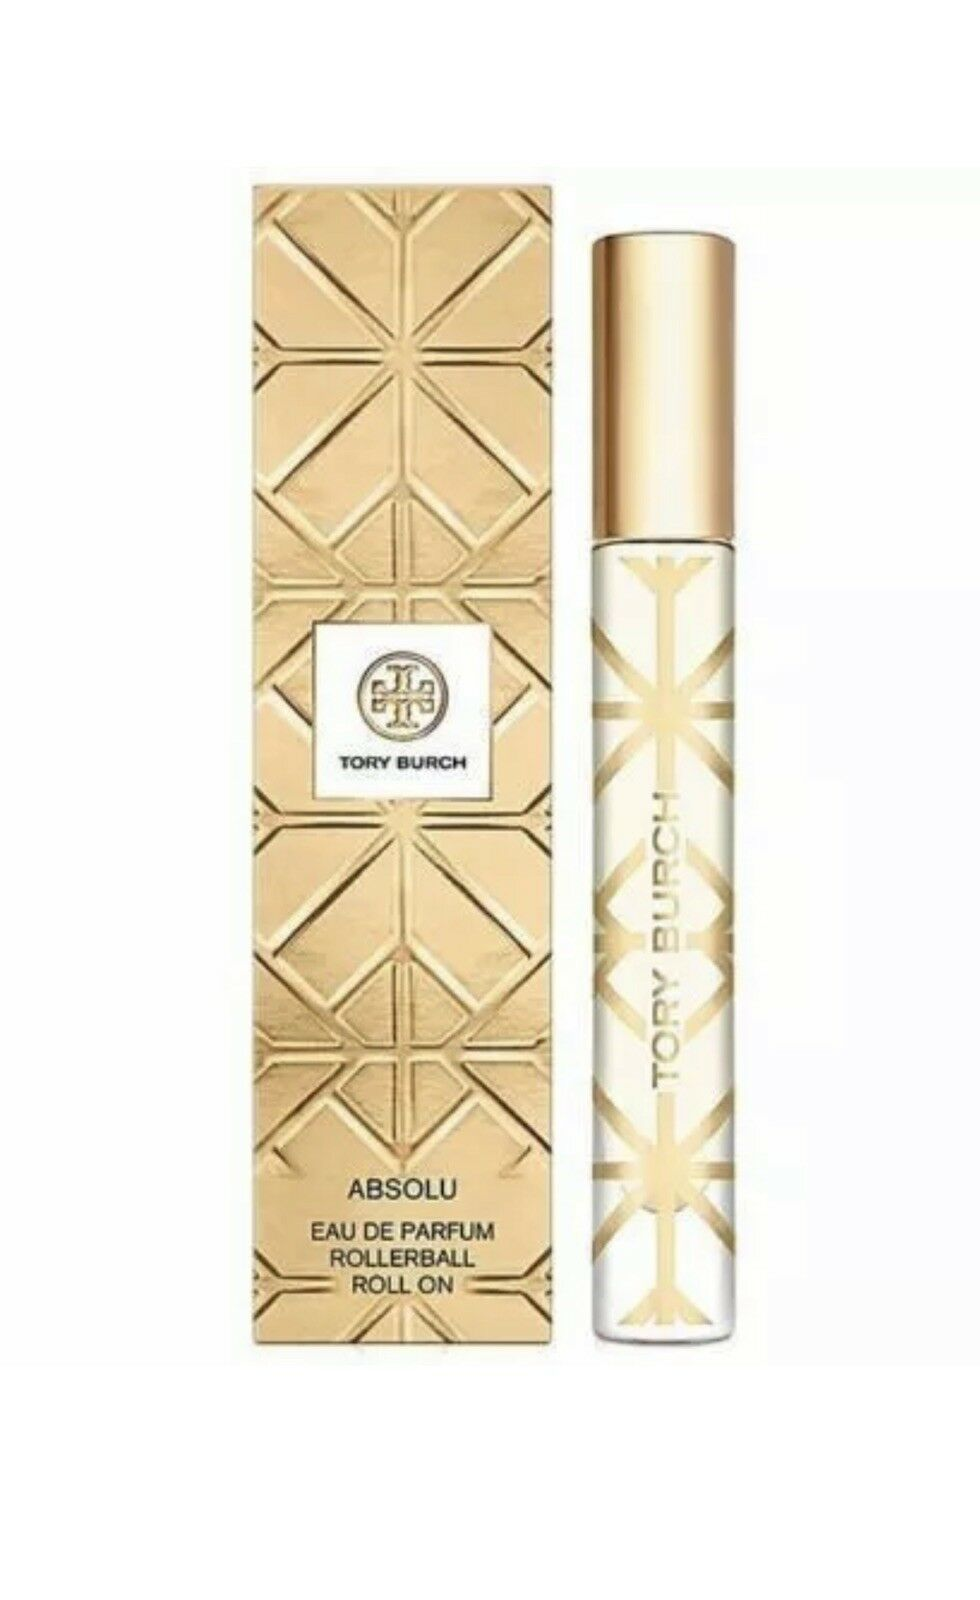 Primary image for TORY BURCH - ABSOLU EAU DE PARFUM ROLLERBALL ROLL ON 0.2 fl oz / 6 ml New In Box